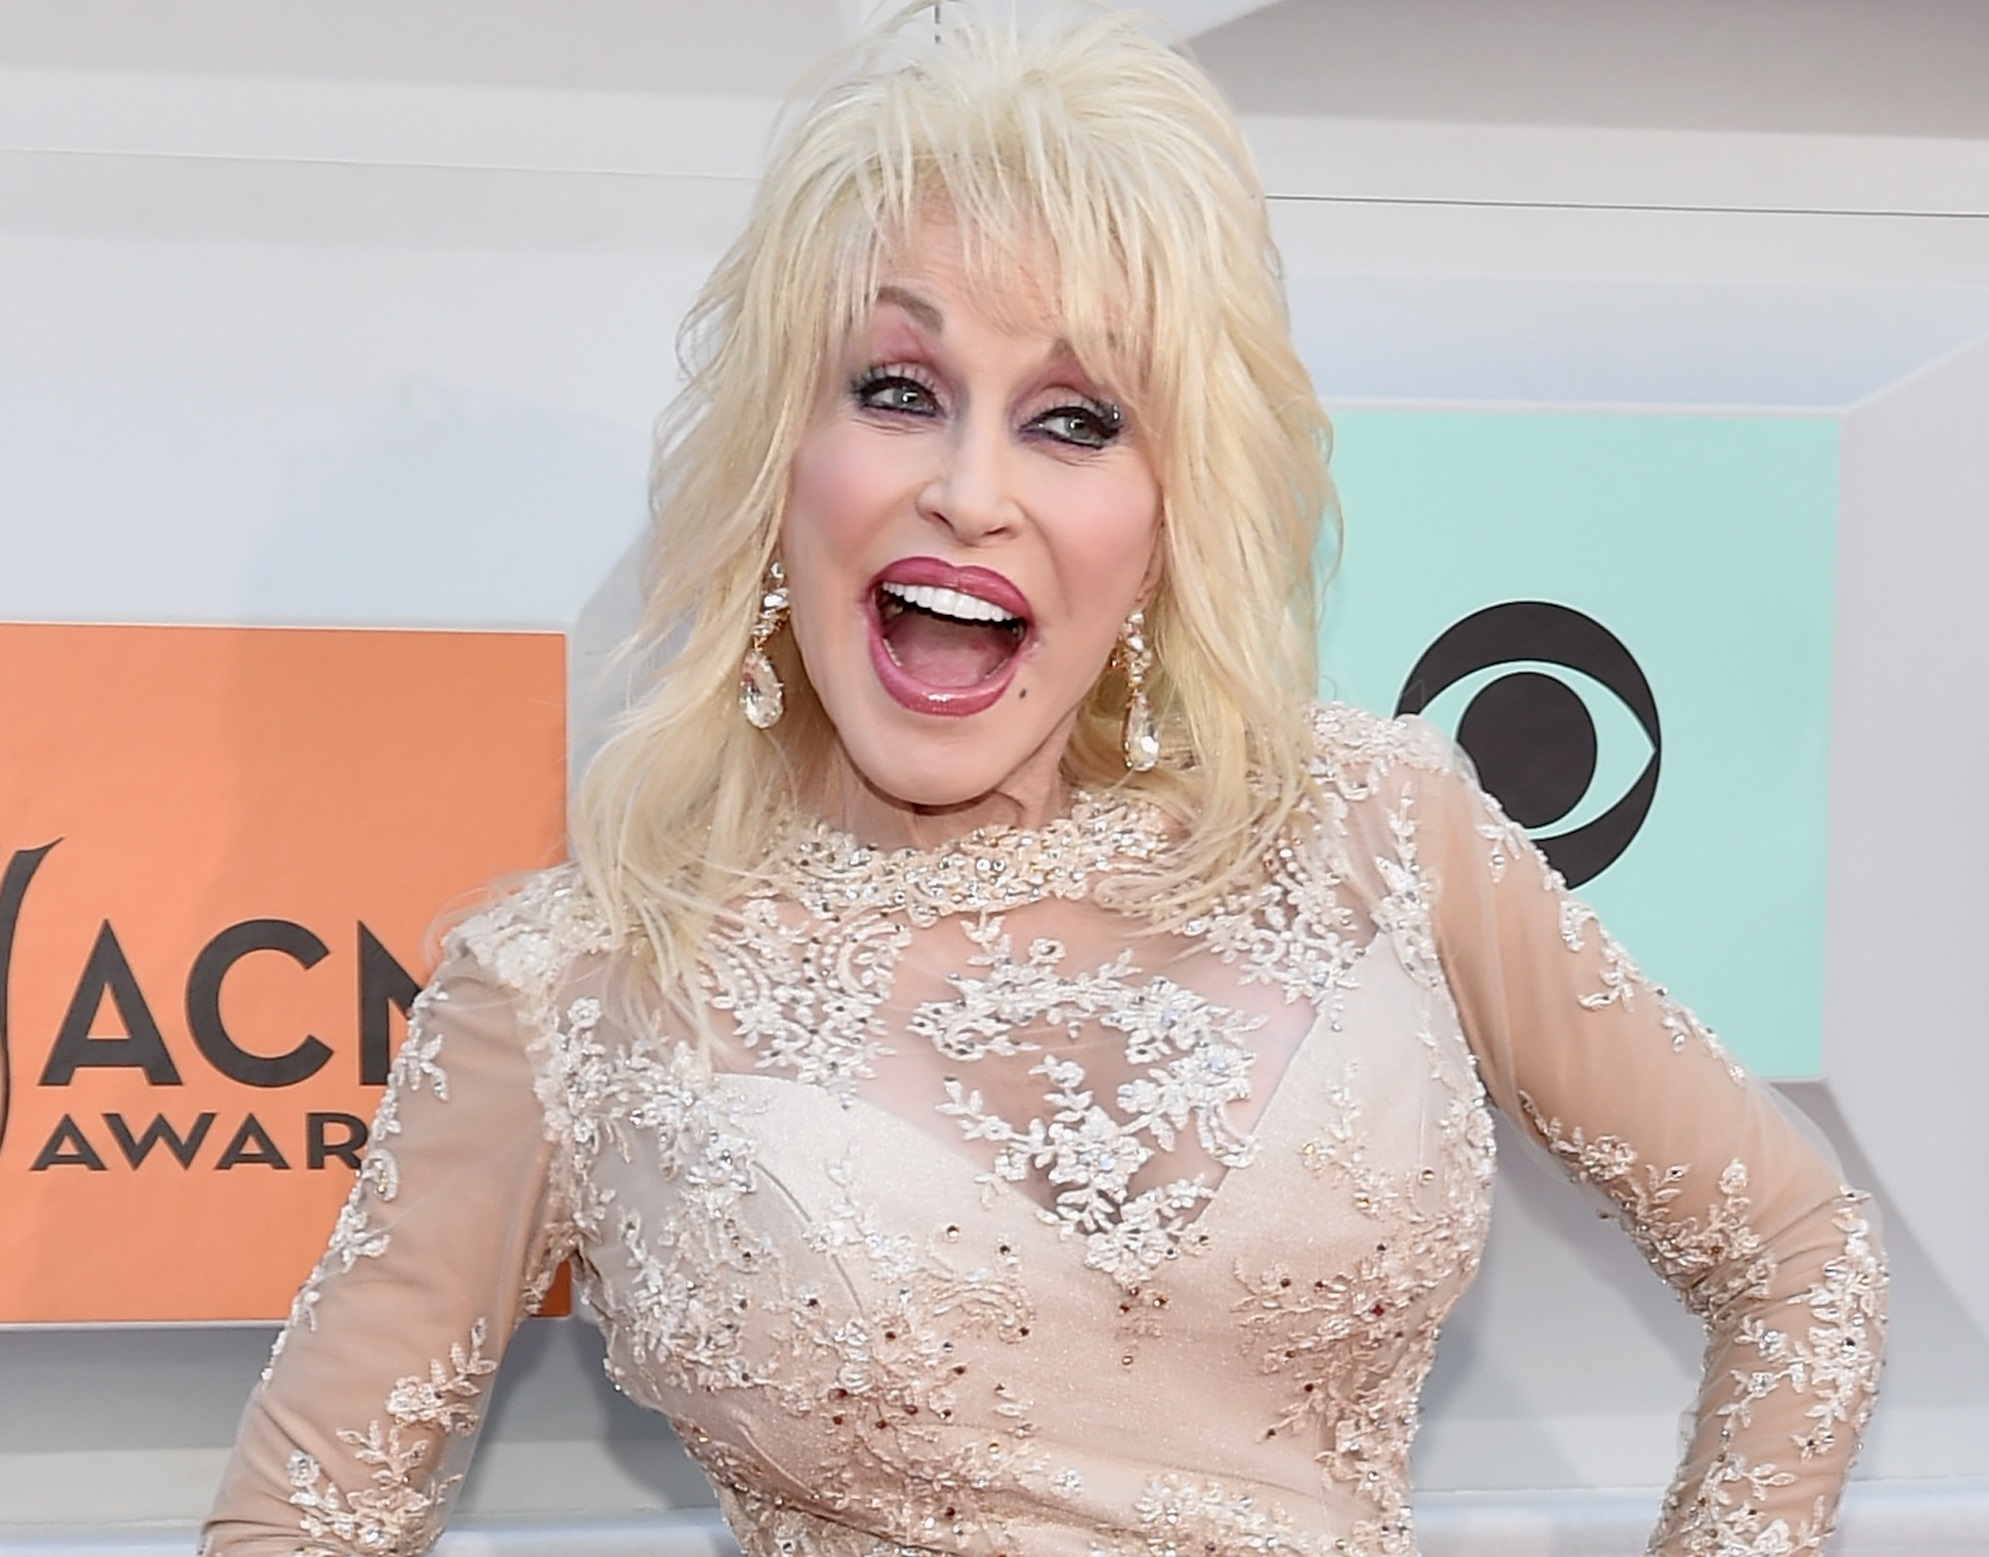 dolly parton reveals how she still fits in those 'tight-ass clothes